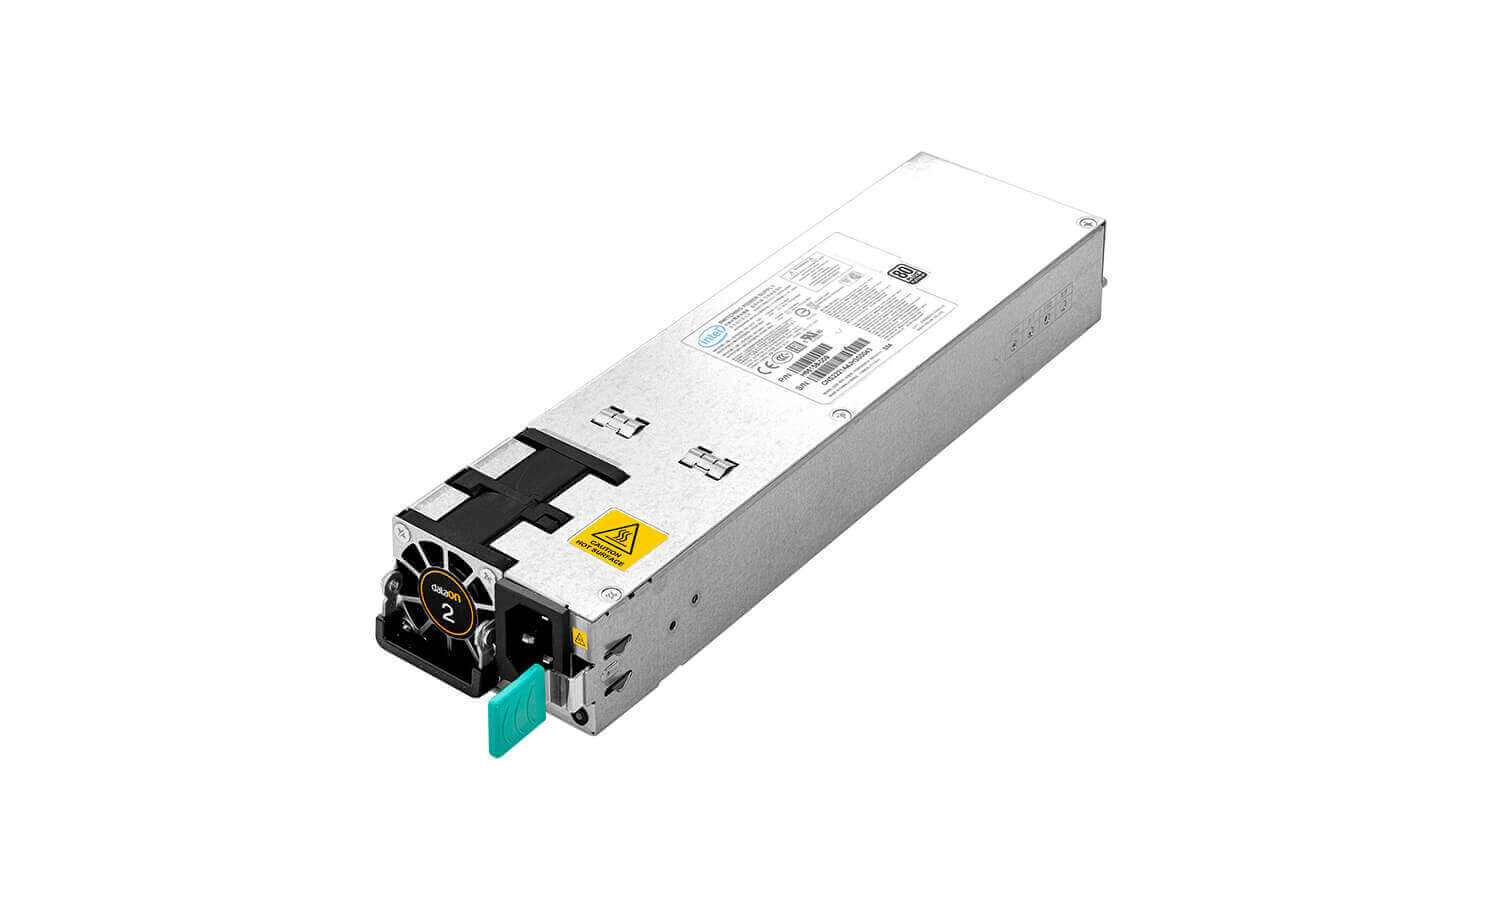 allsystems-producten-hyperconverged-systems-DataON_S2D_5240i_PSU